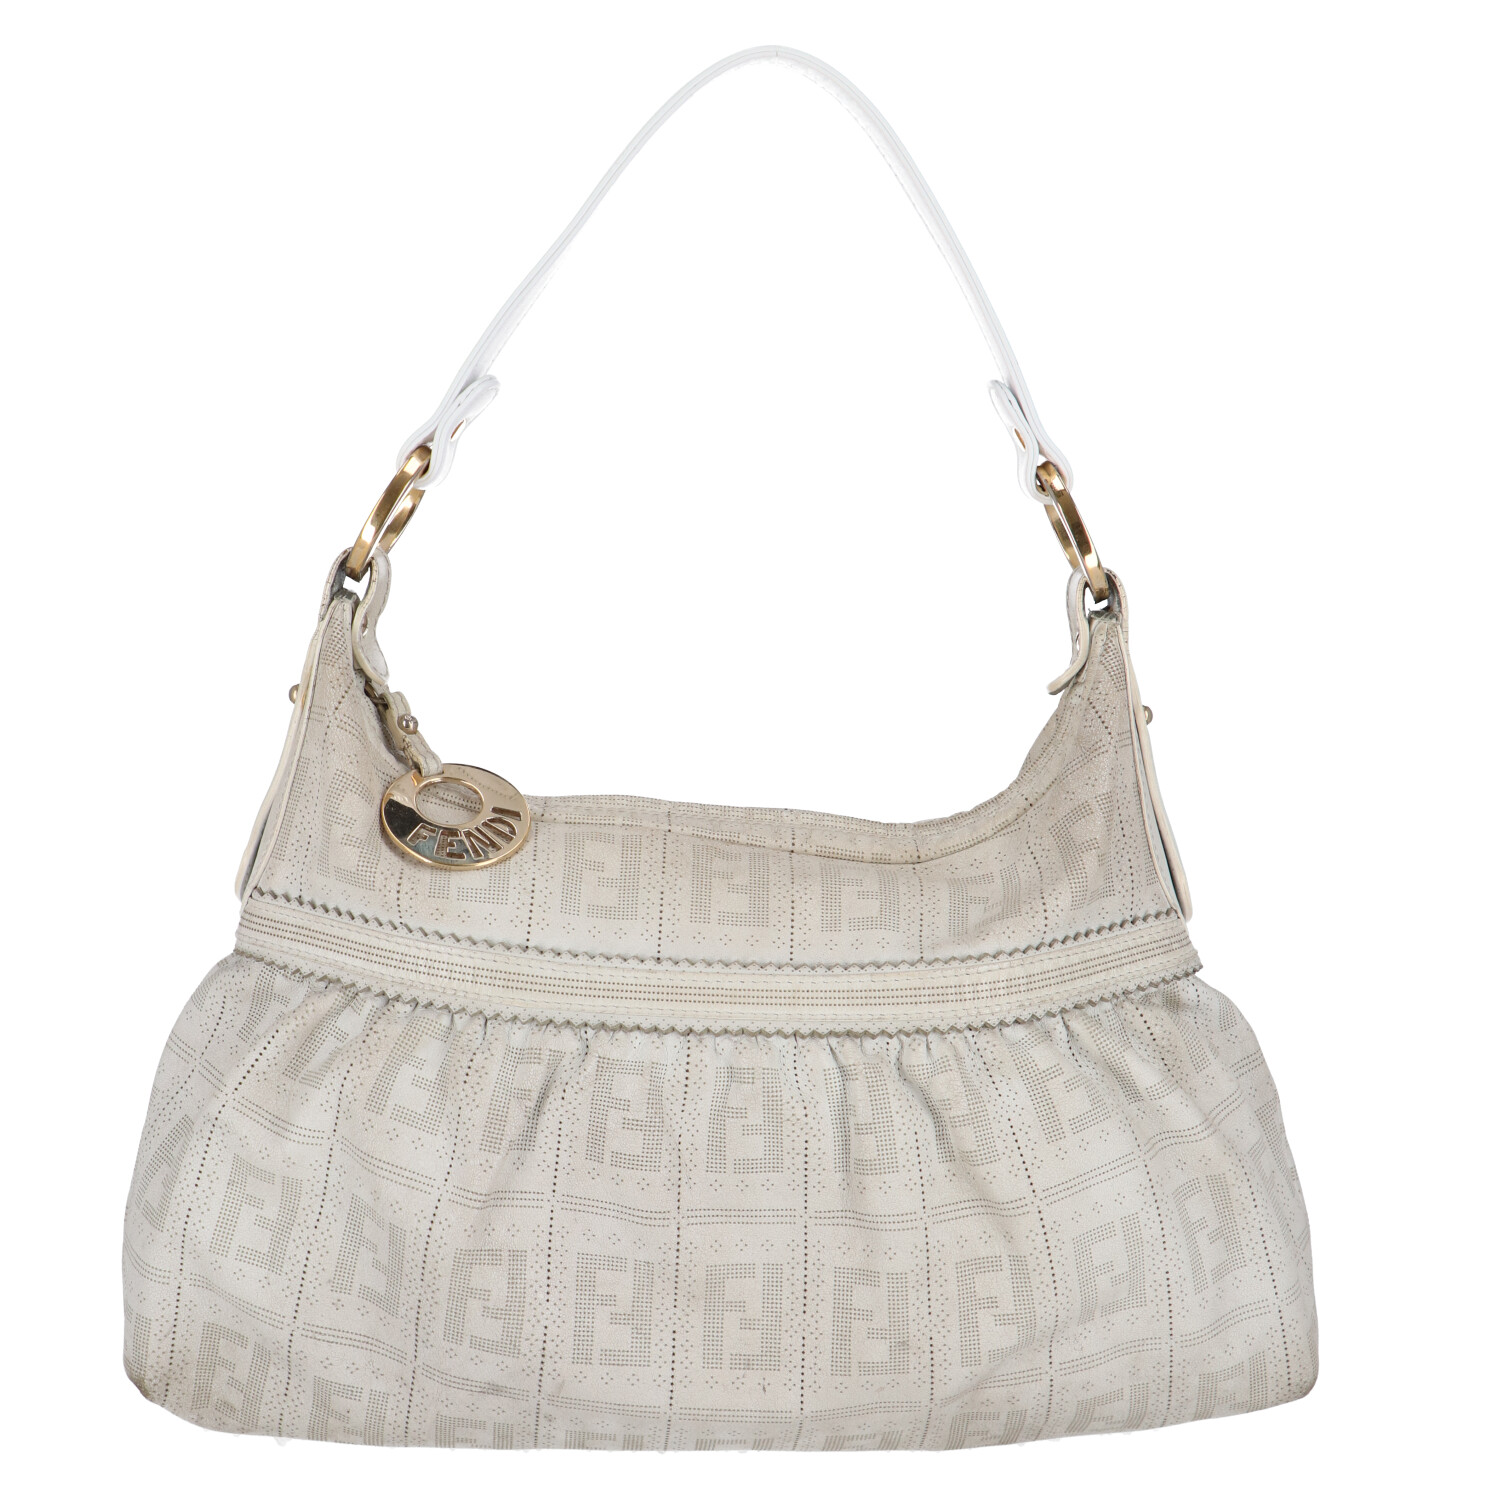 White Zucca Leather Shoulder Bag